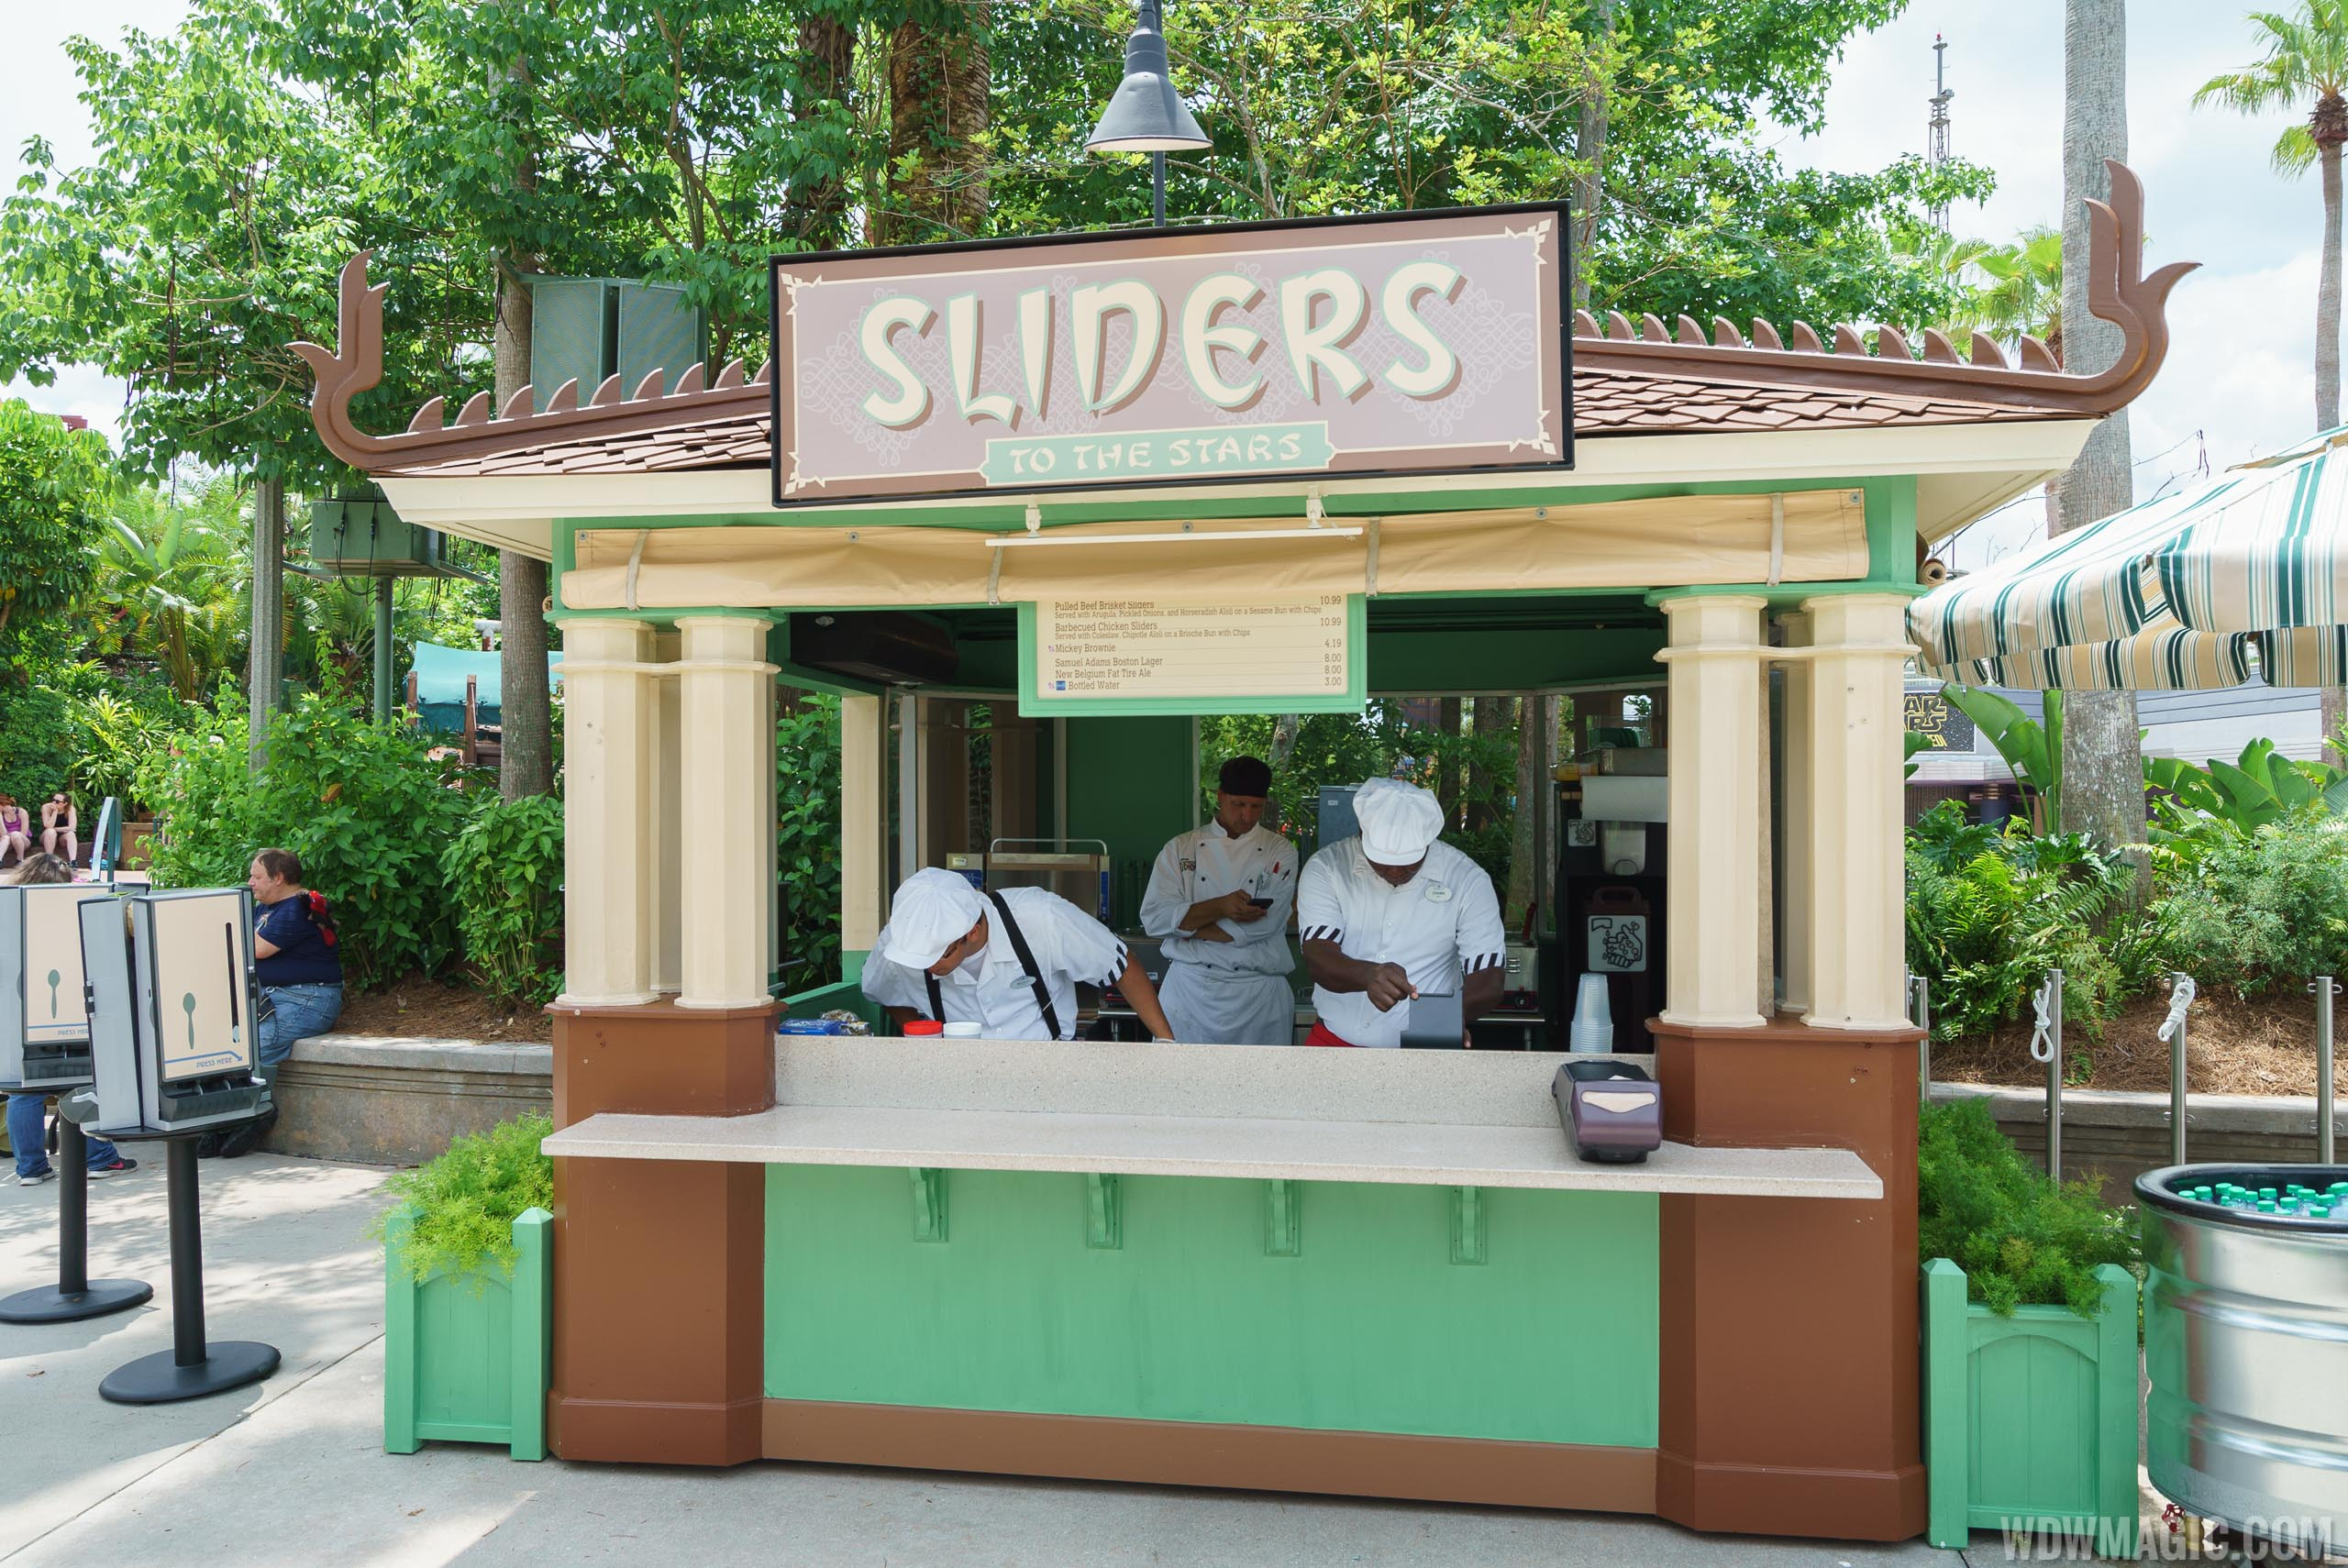 Sliders to the Stars kiosk